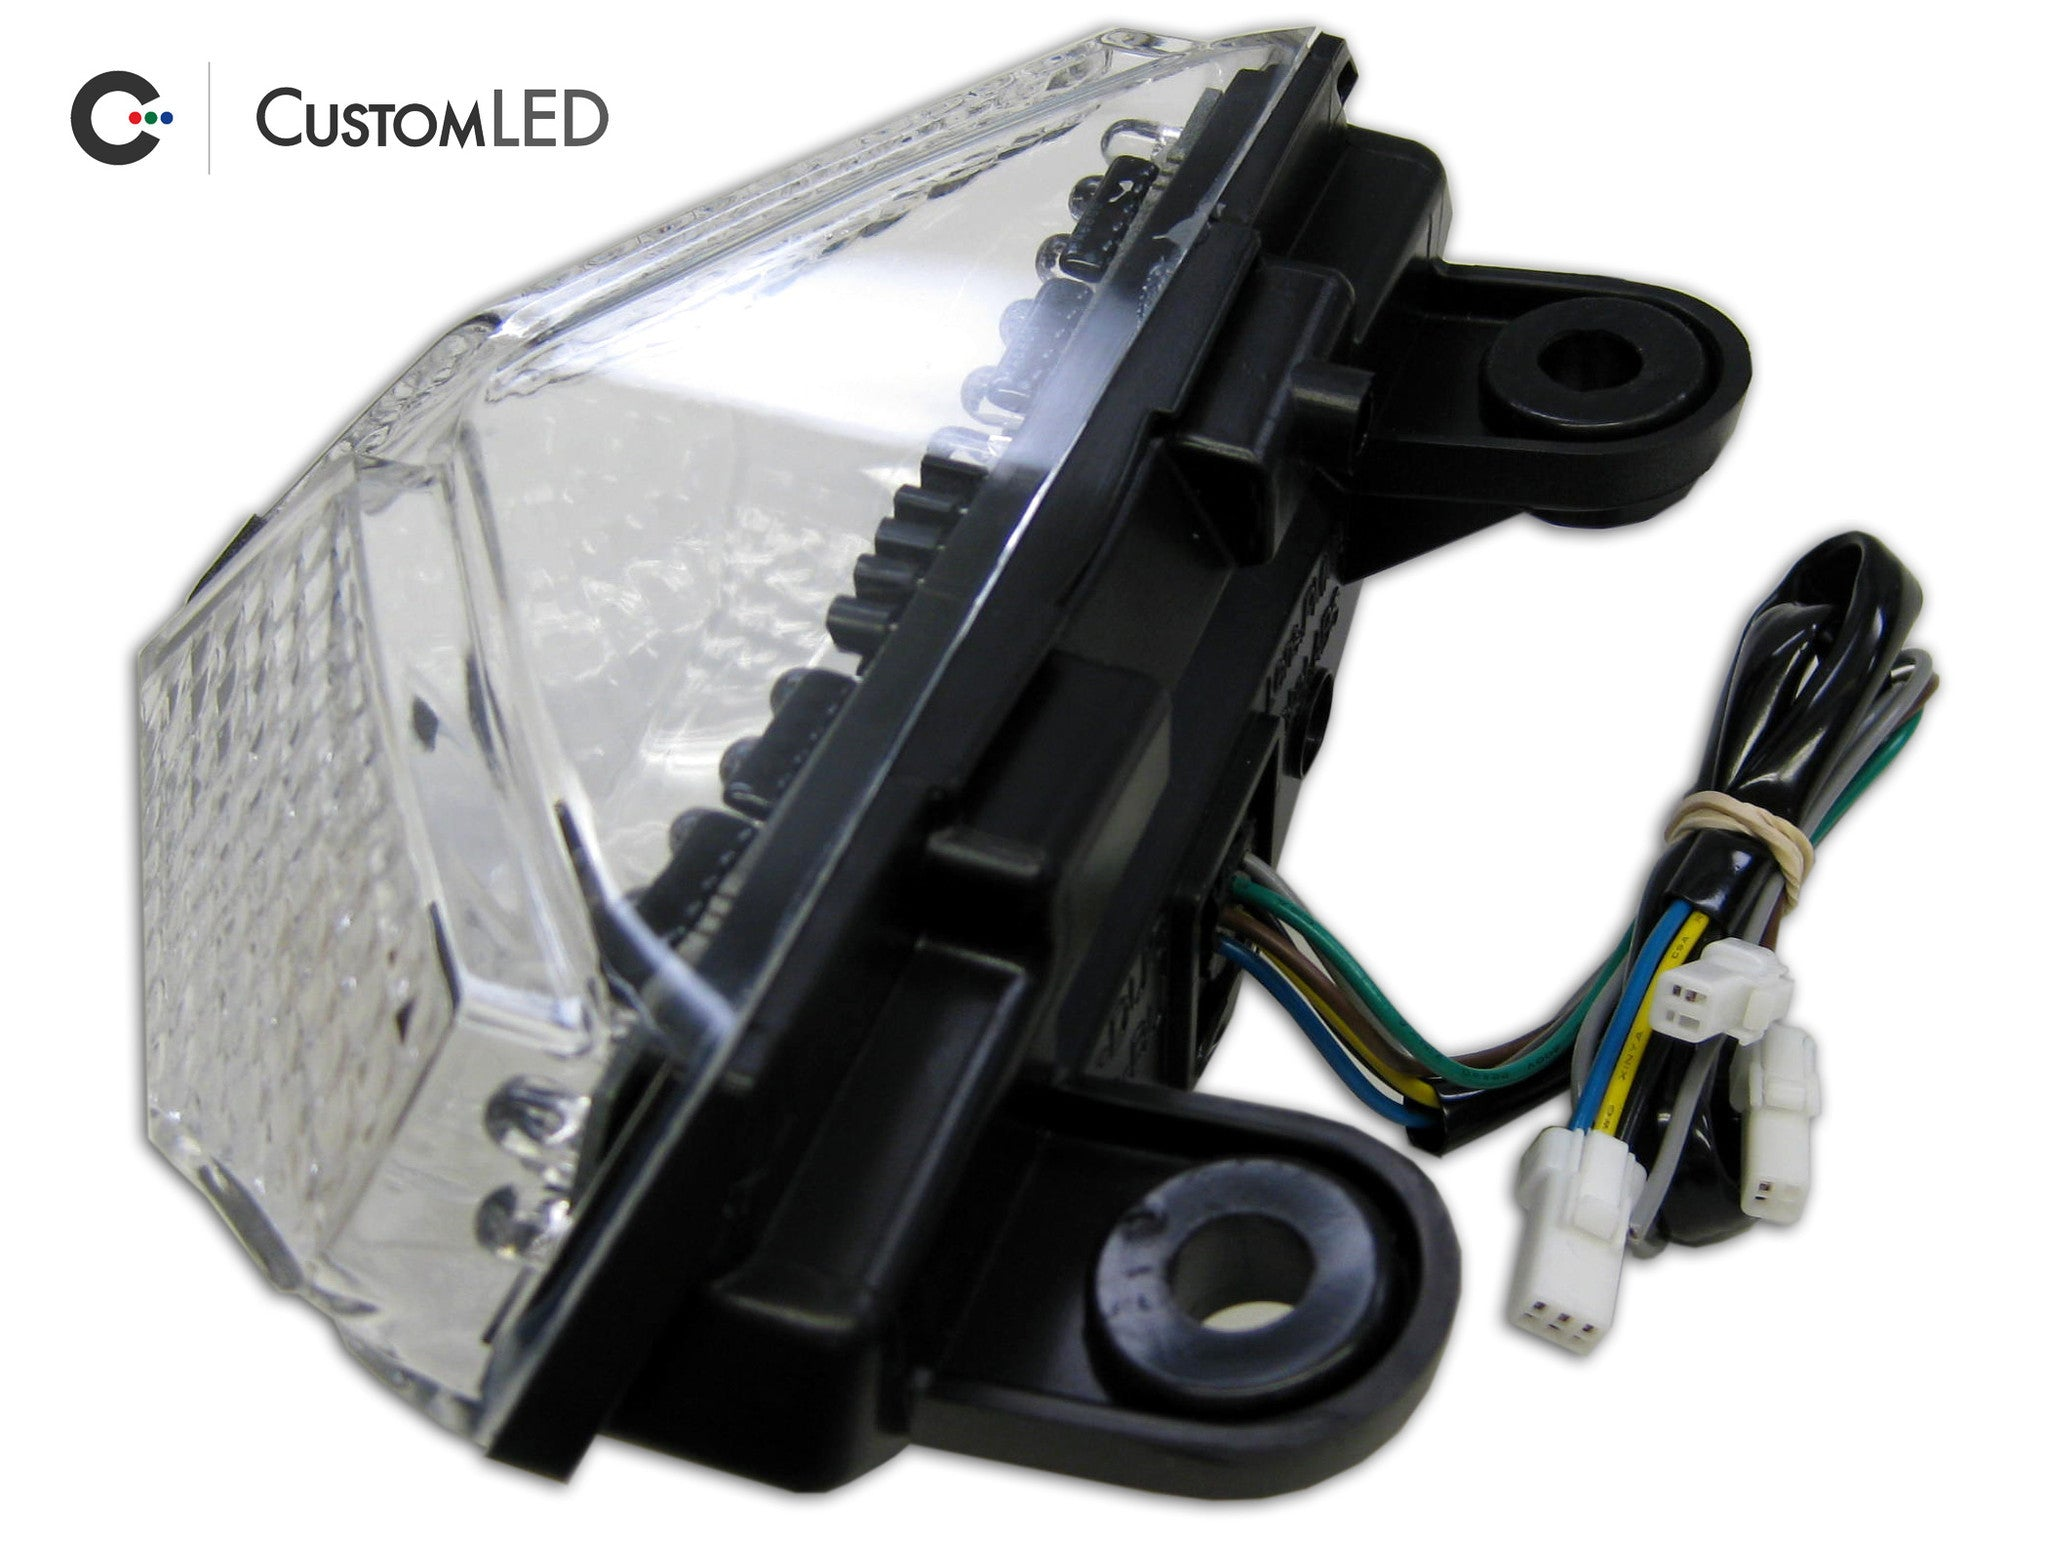 ducati 848 blaster-x integrated led tail light for years 2008 2009 2010  2011 2012